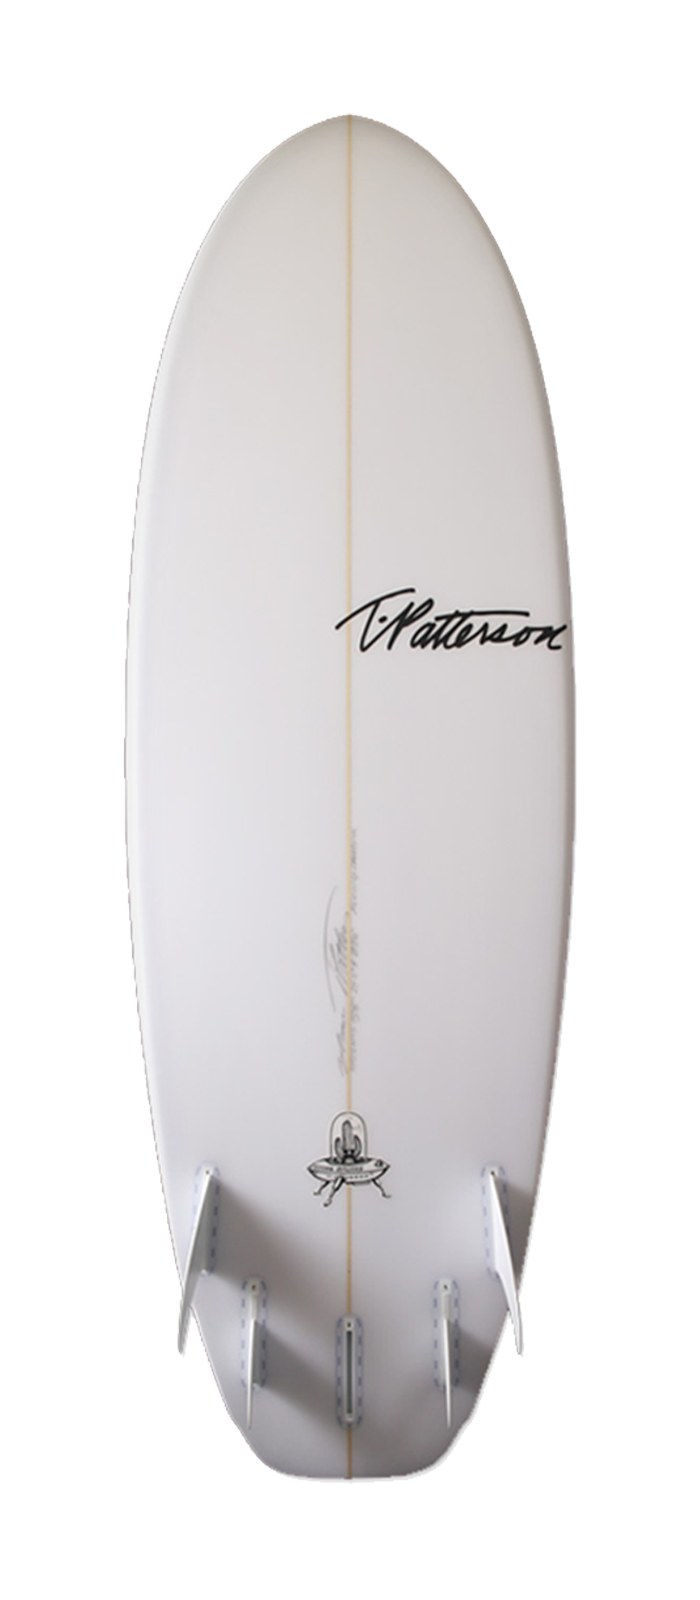 Flying Saucer surfboard model bottom